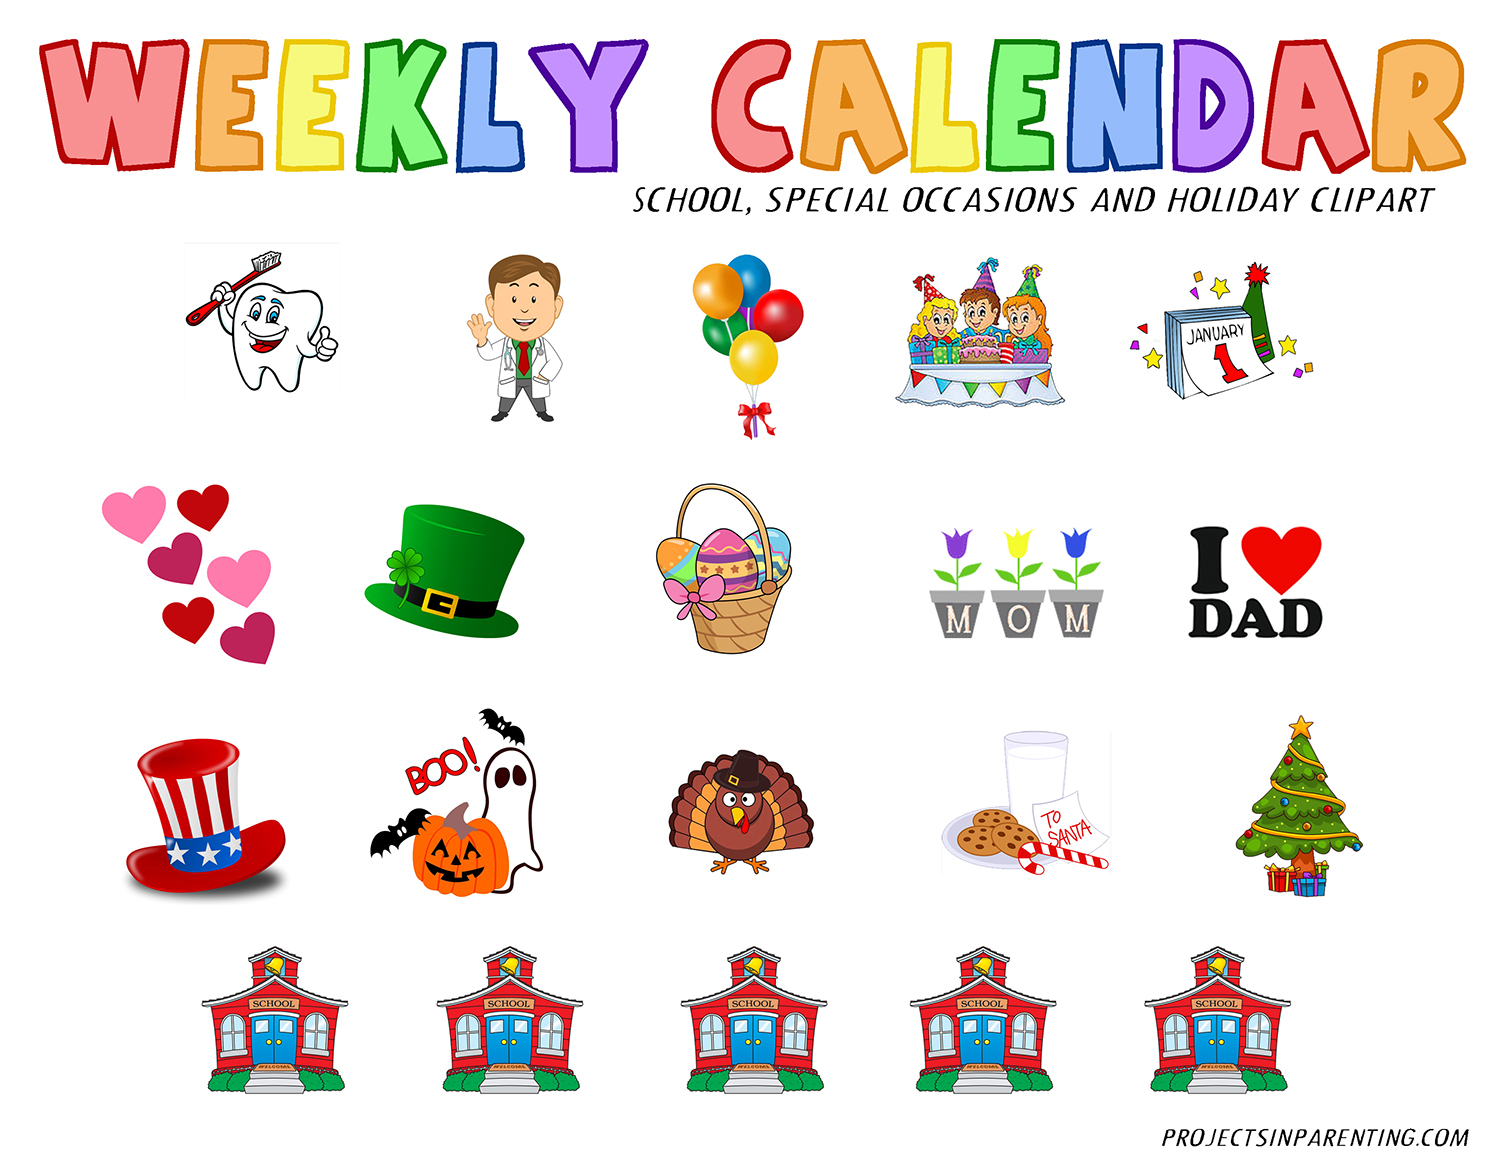 Activities tonight clipart graphic transparent download Toddler Weekly Calendar | Projects In Parenting graphic transparent download